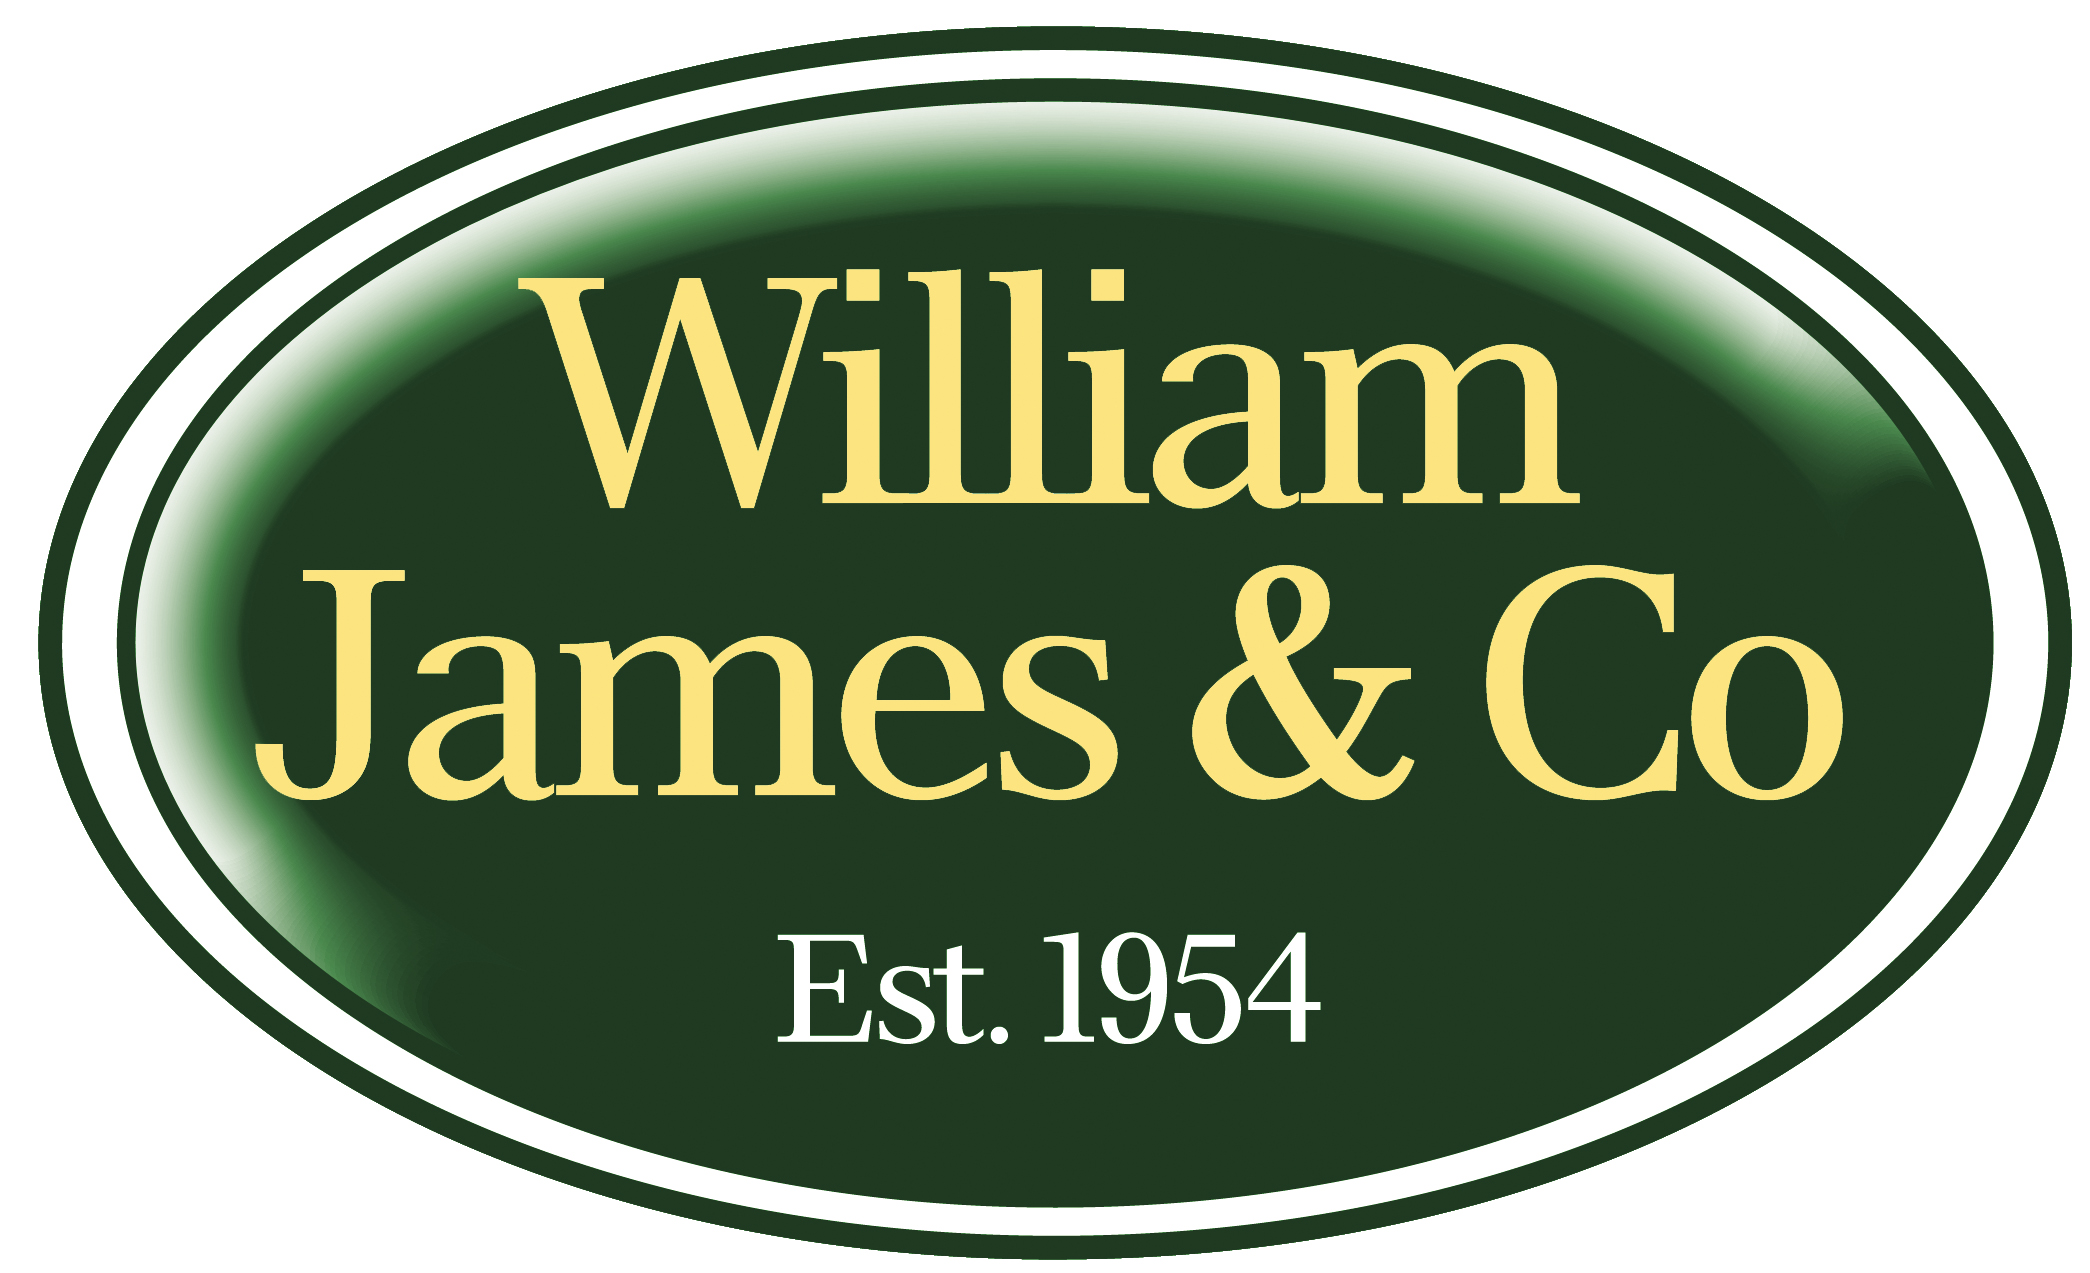 william james and co logo